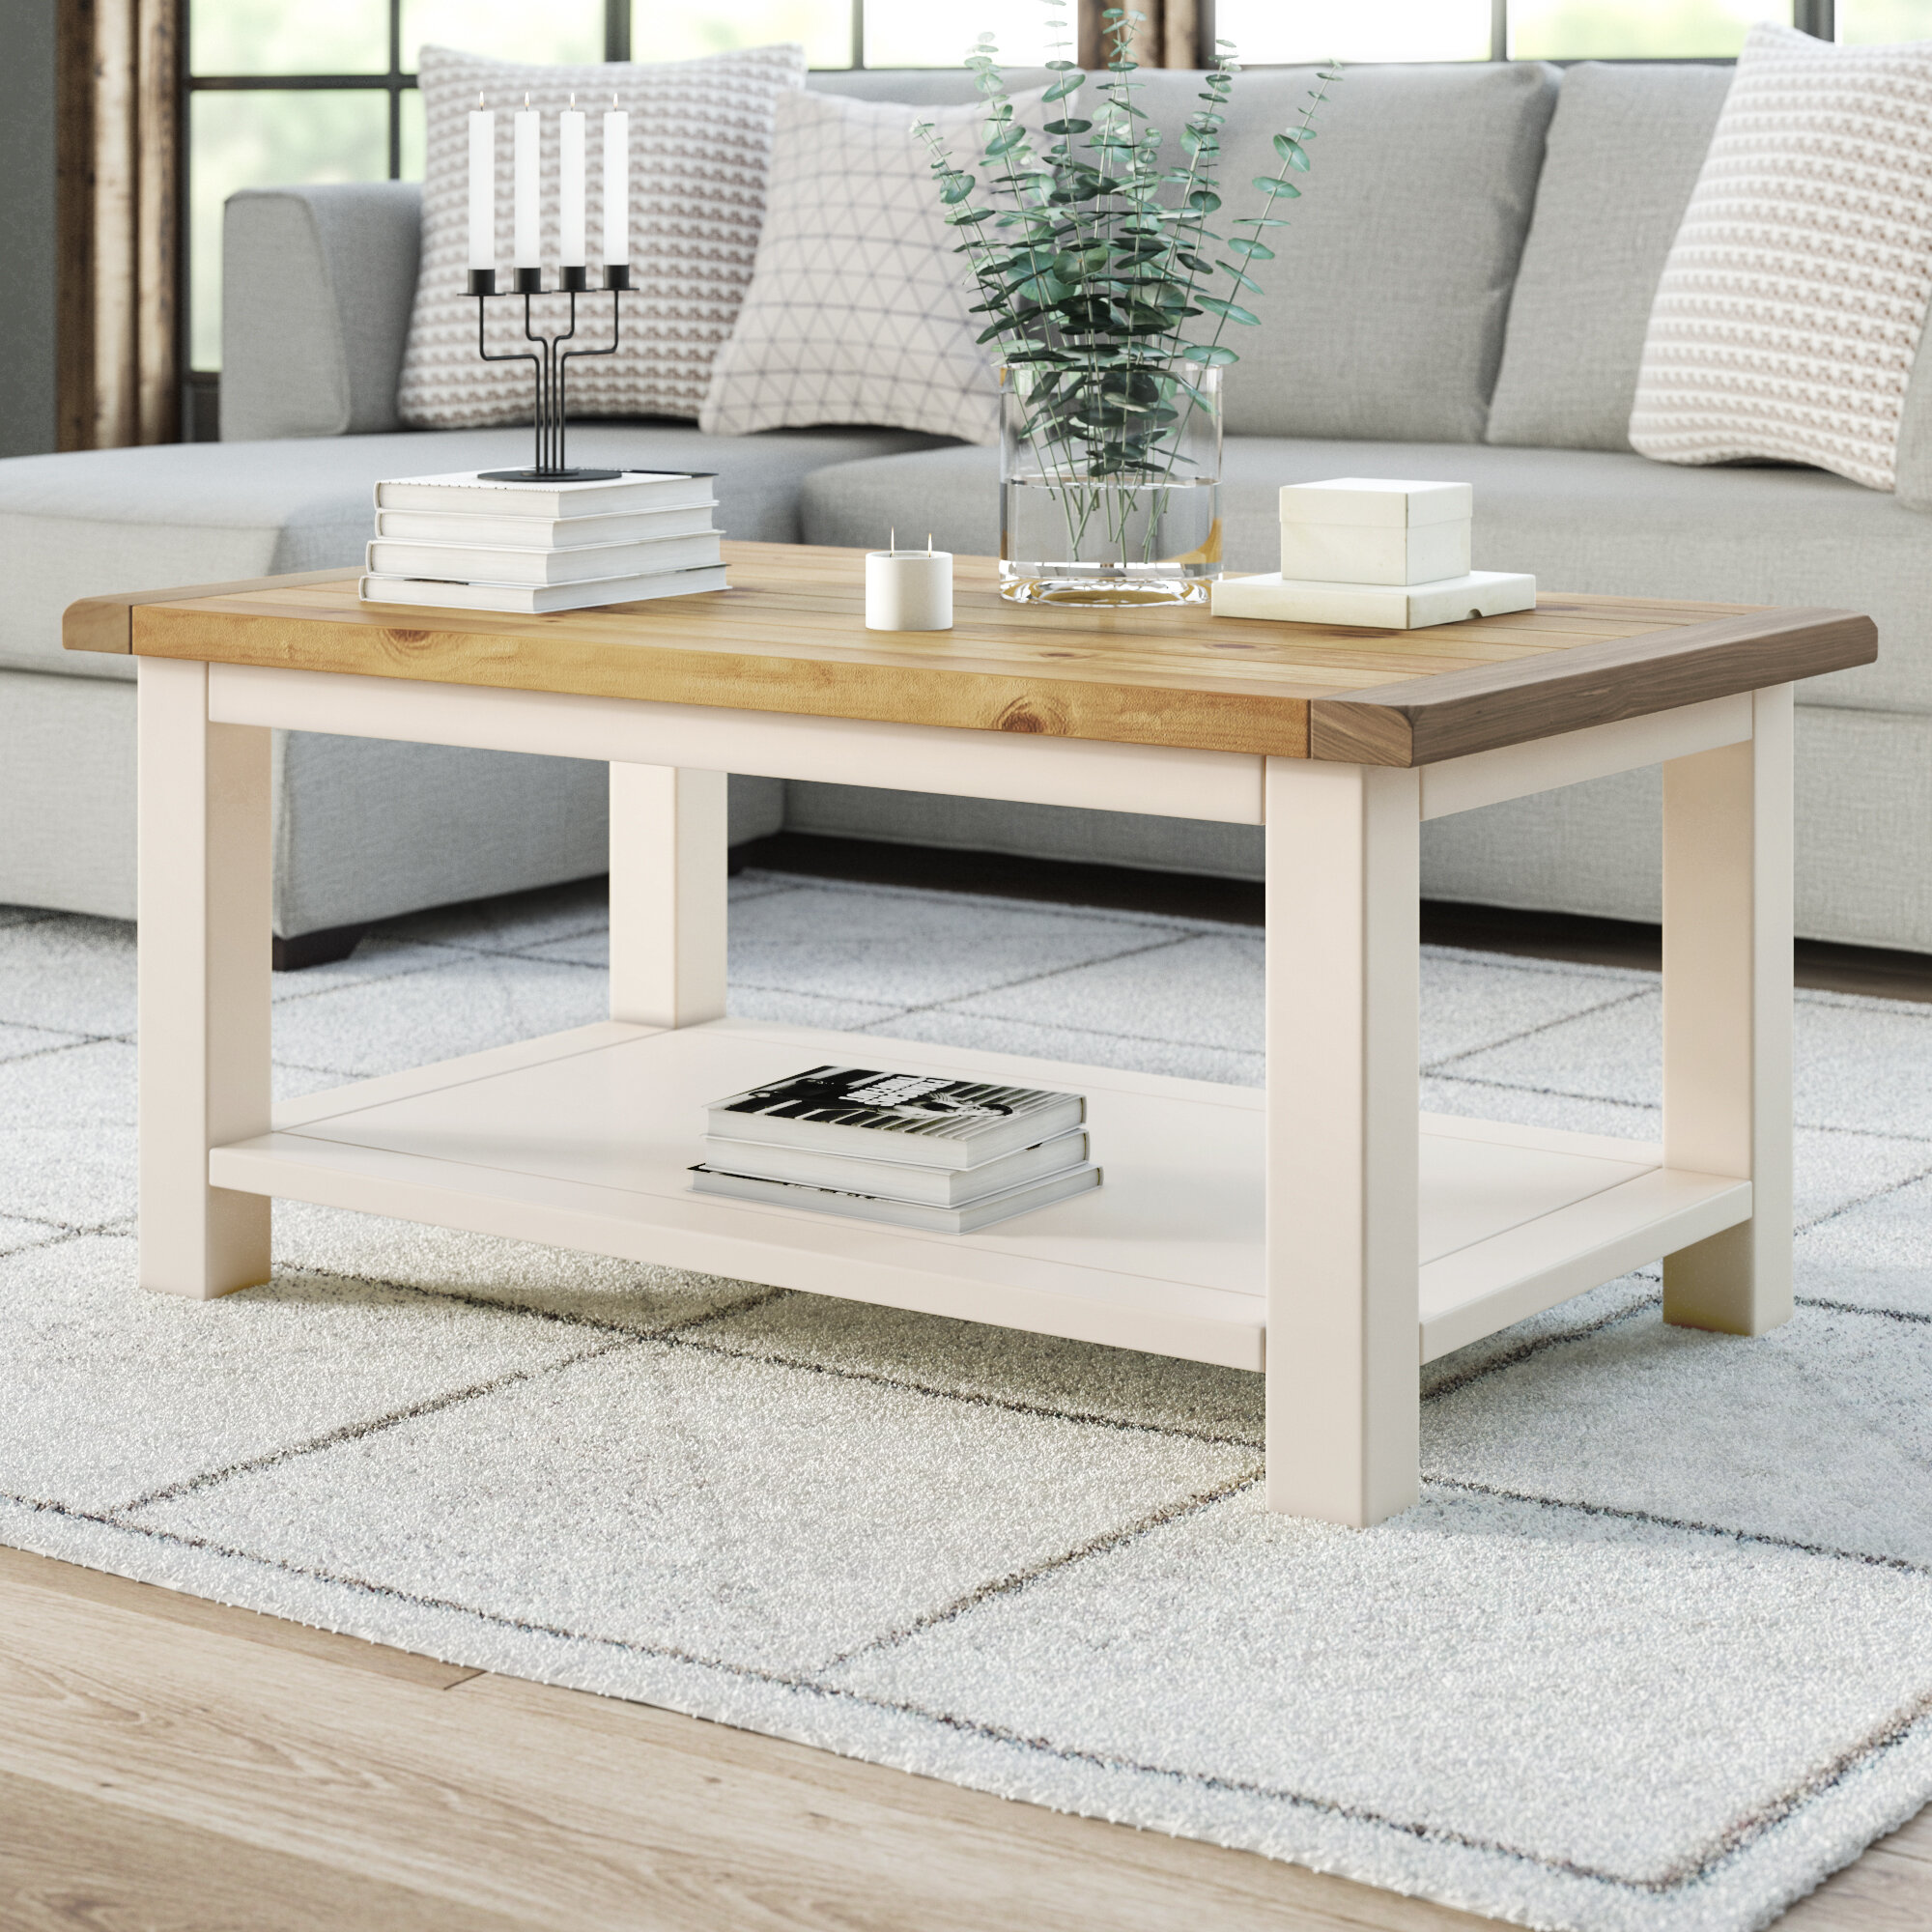 Brambly Cottage Faucher Coffee Table Reviews Wayfair Co Uk